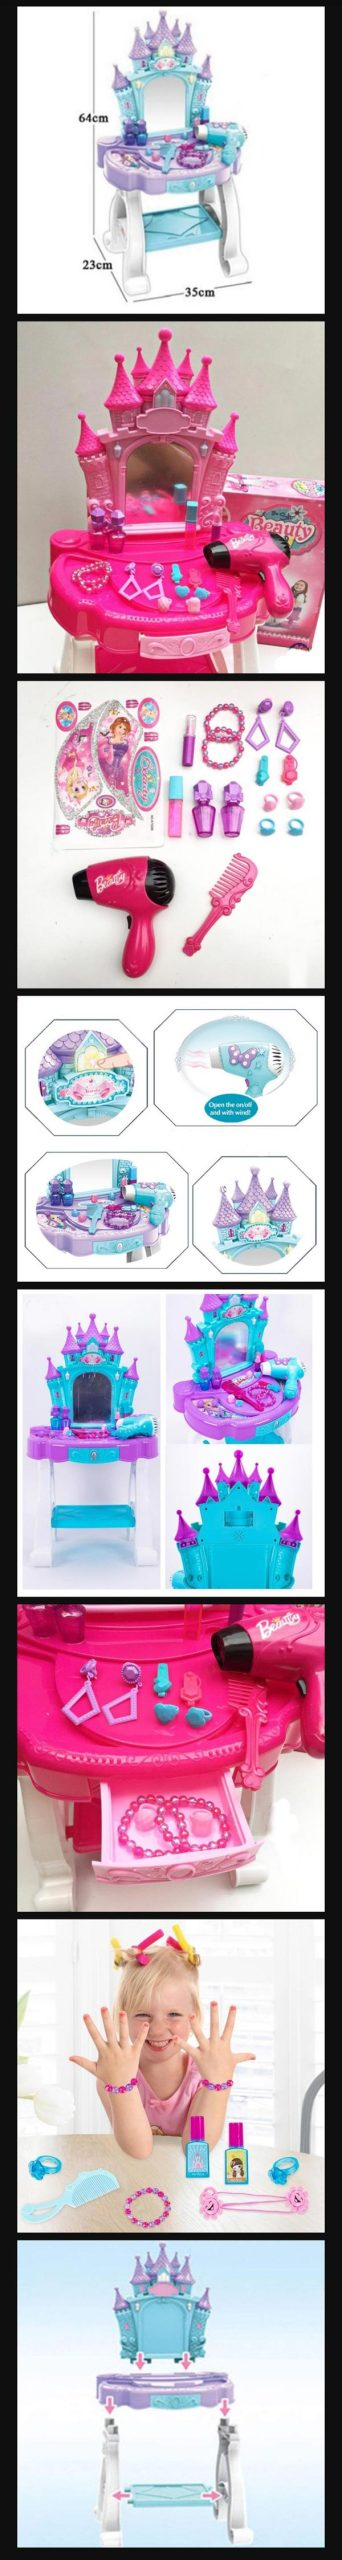 New Dressing Table For Kids